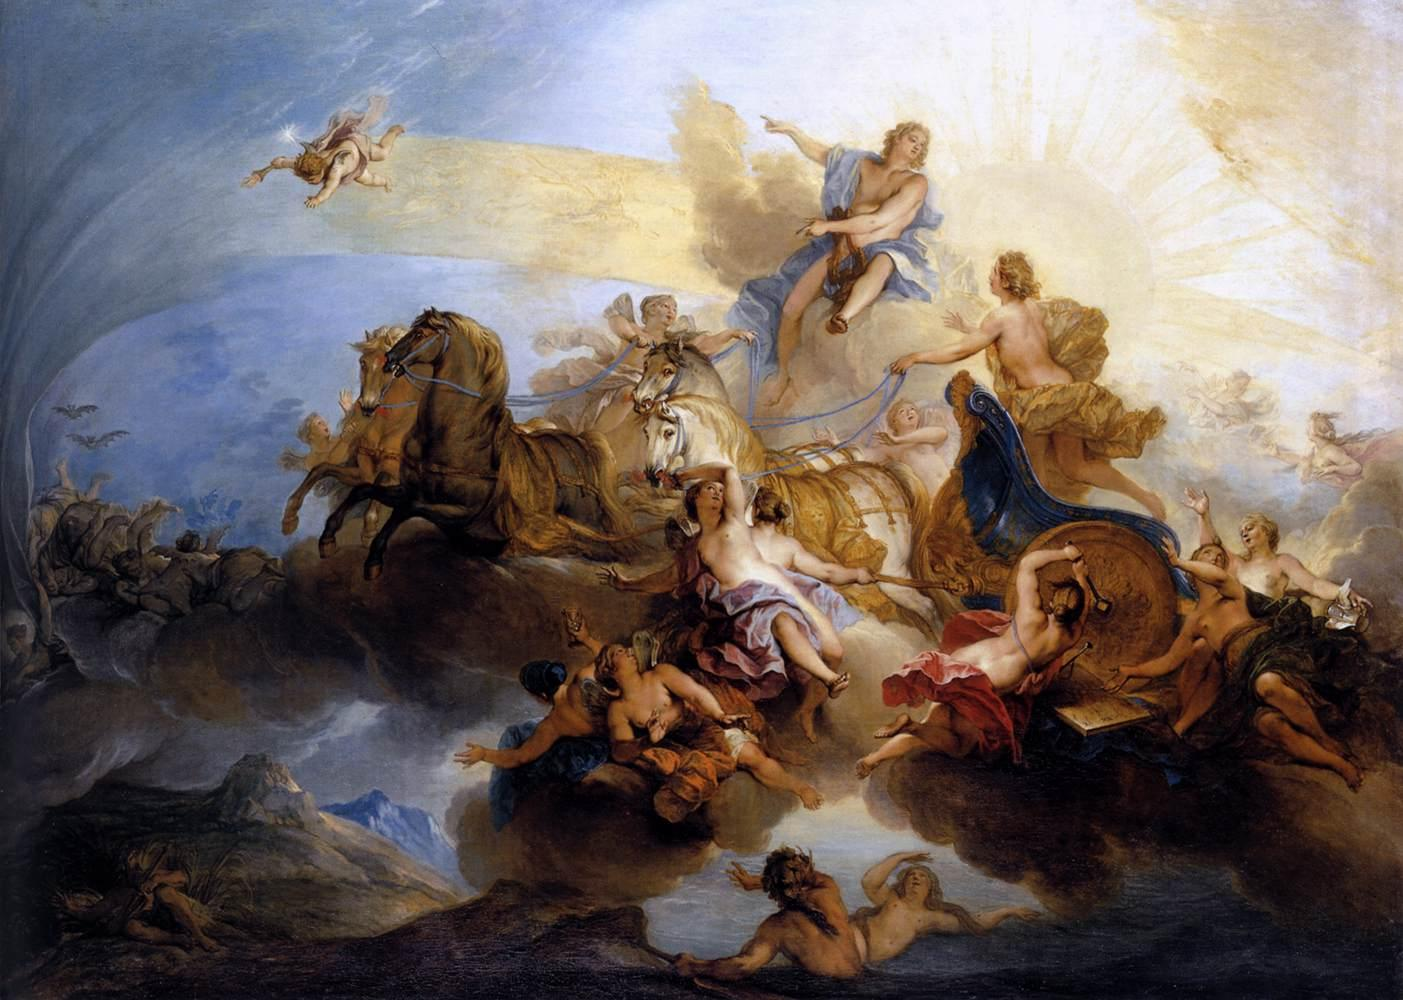 Bertin,_Nicolas_-_Phaéton_on_the_Chariot_of_Apollo_-_c._1720.jpg (1403×1000)